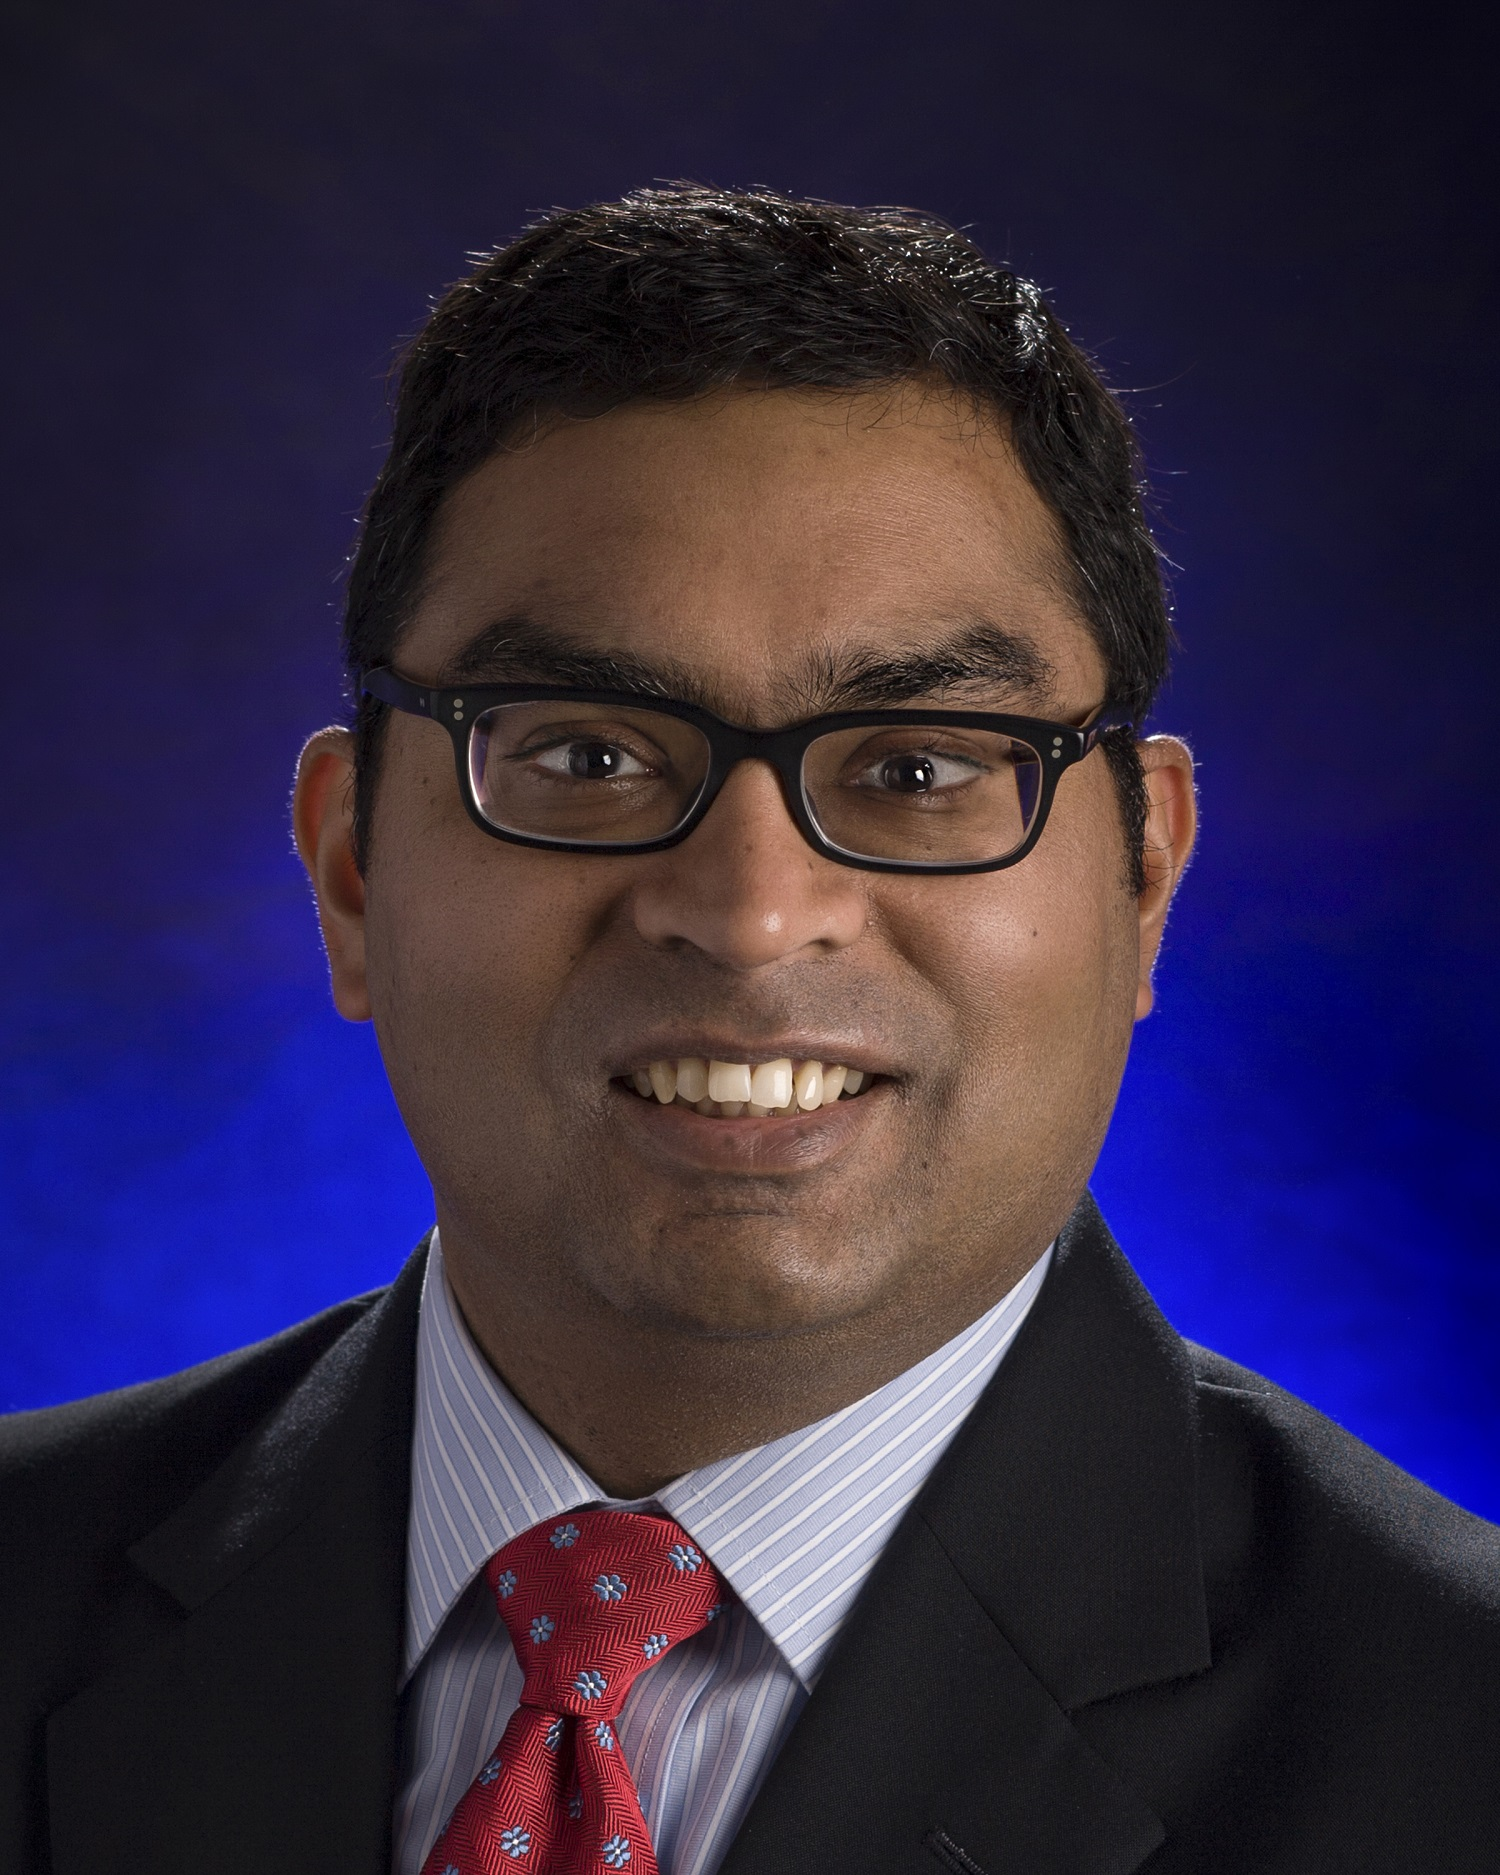 Dr. Prashanth Vallabhanath, MD